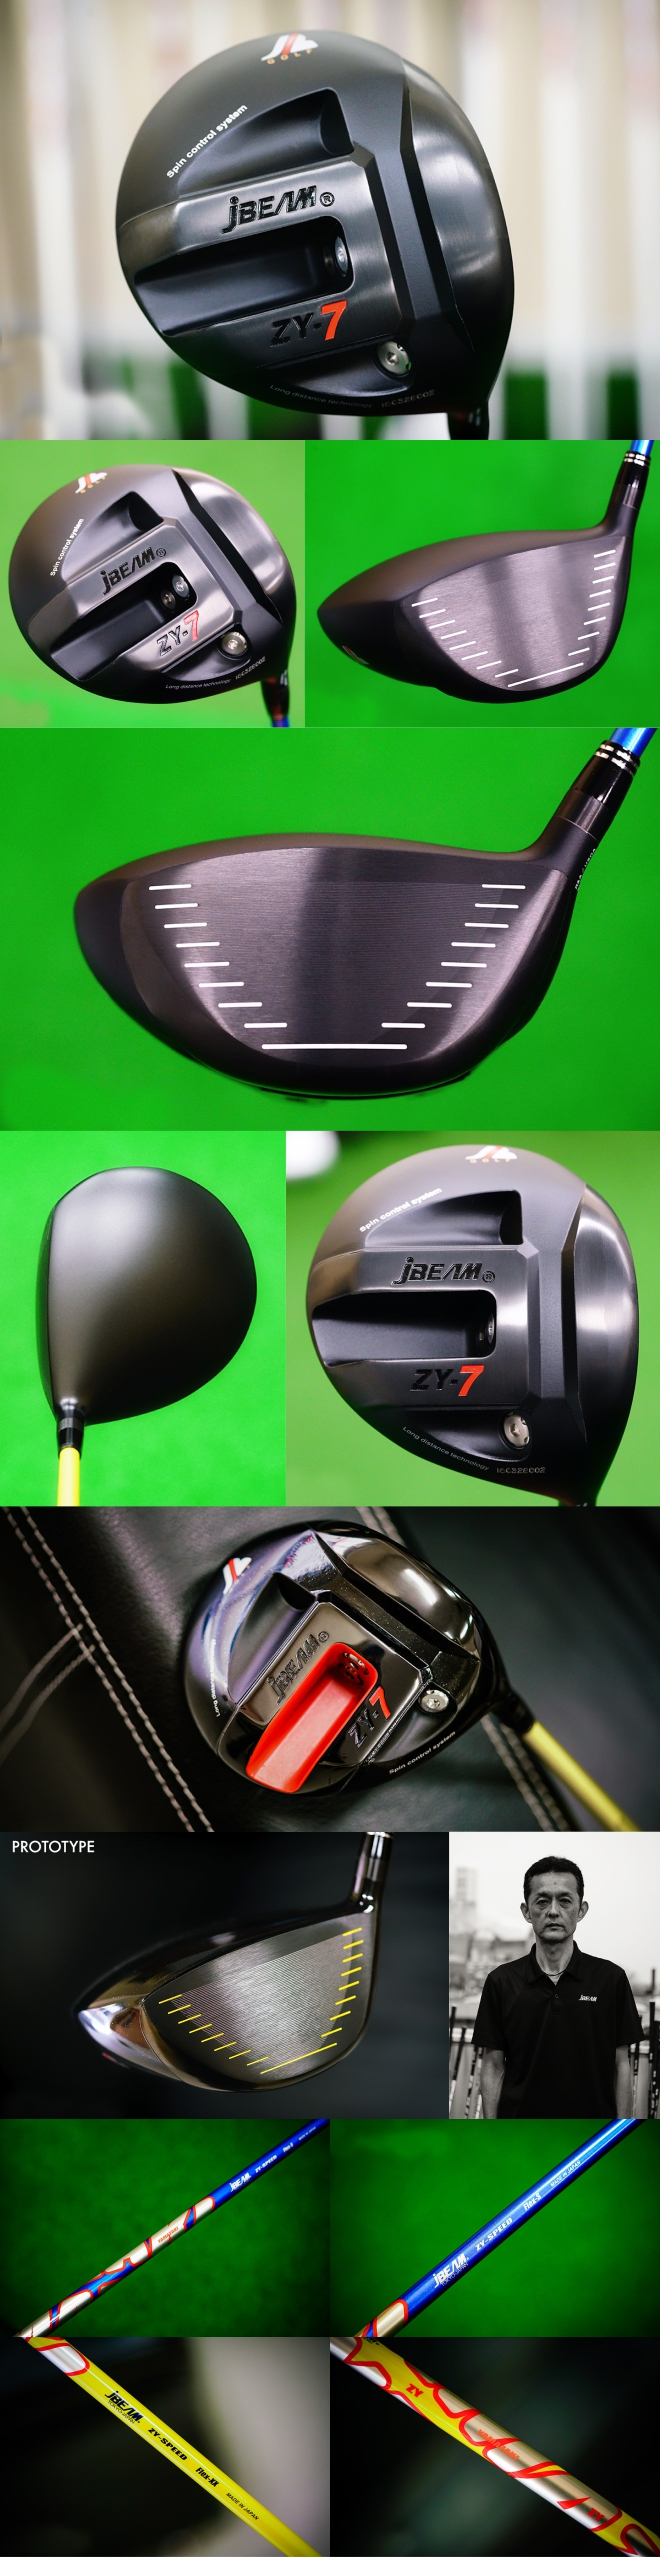 jBeam ZY-7 Driver